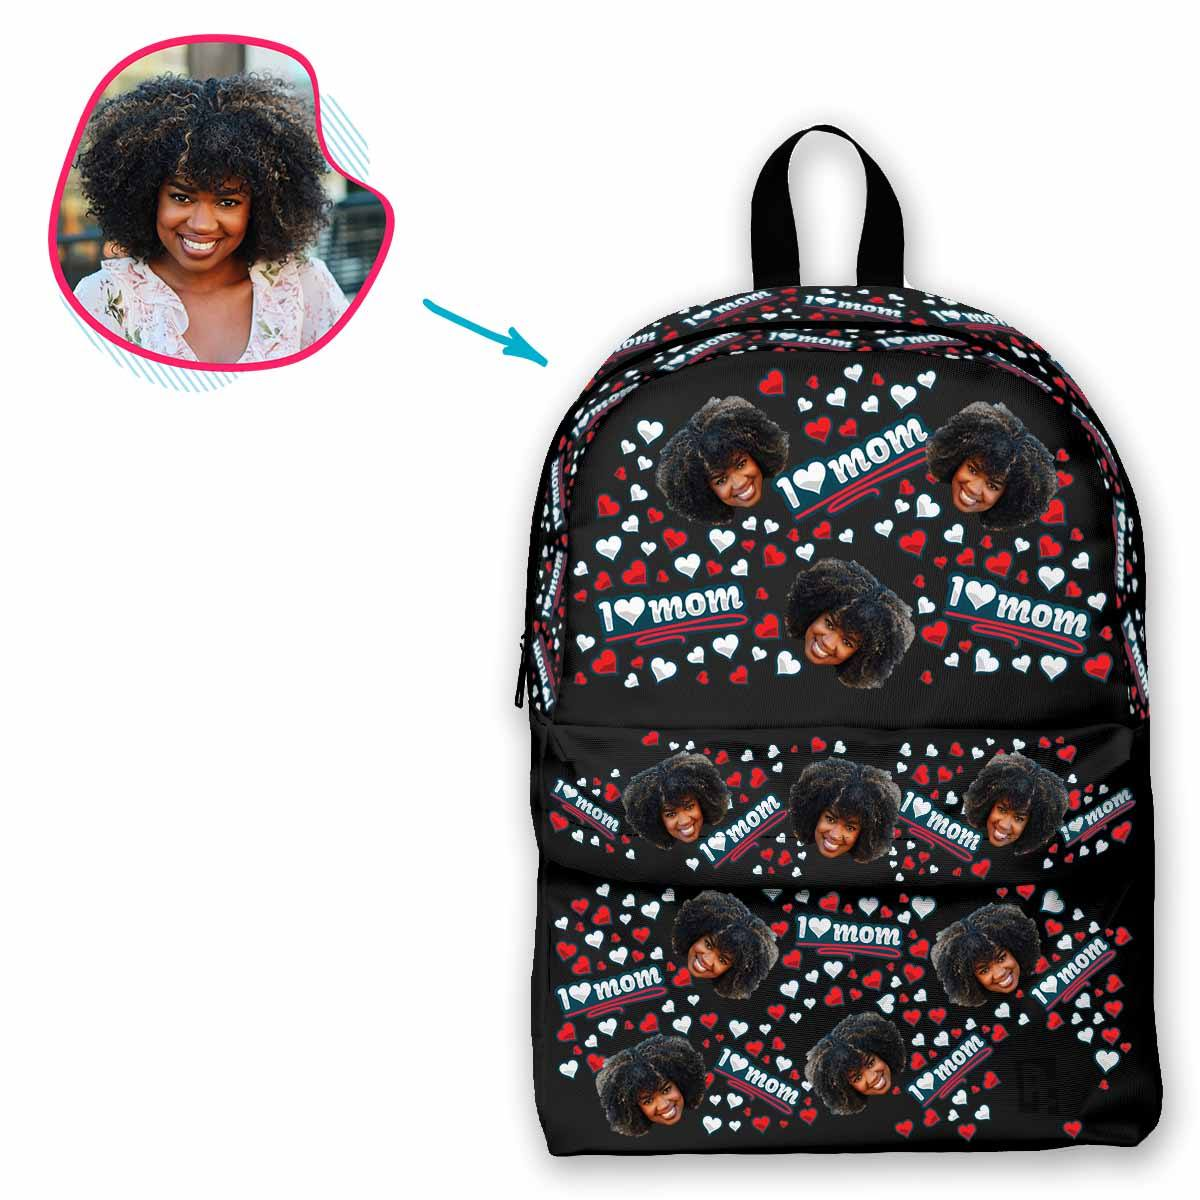 dark Love Mom classic backpack personalized with photo of face printed on it